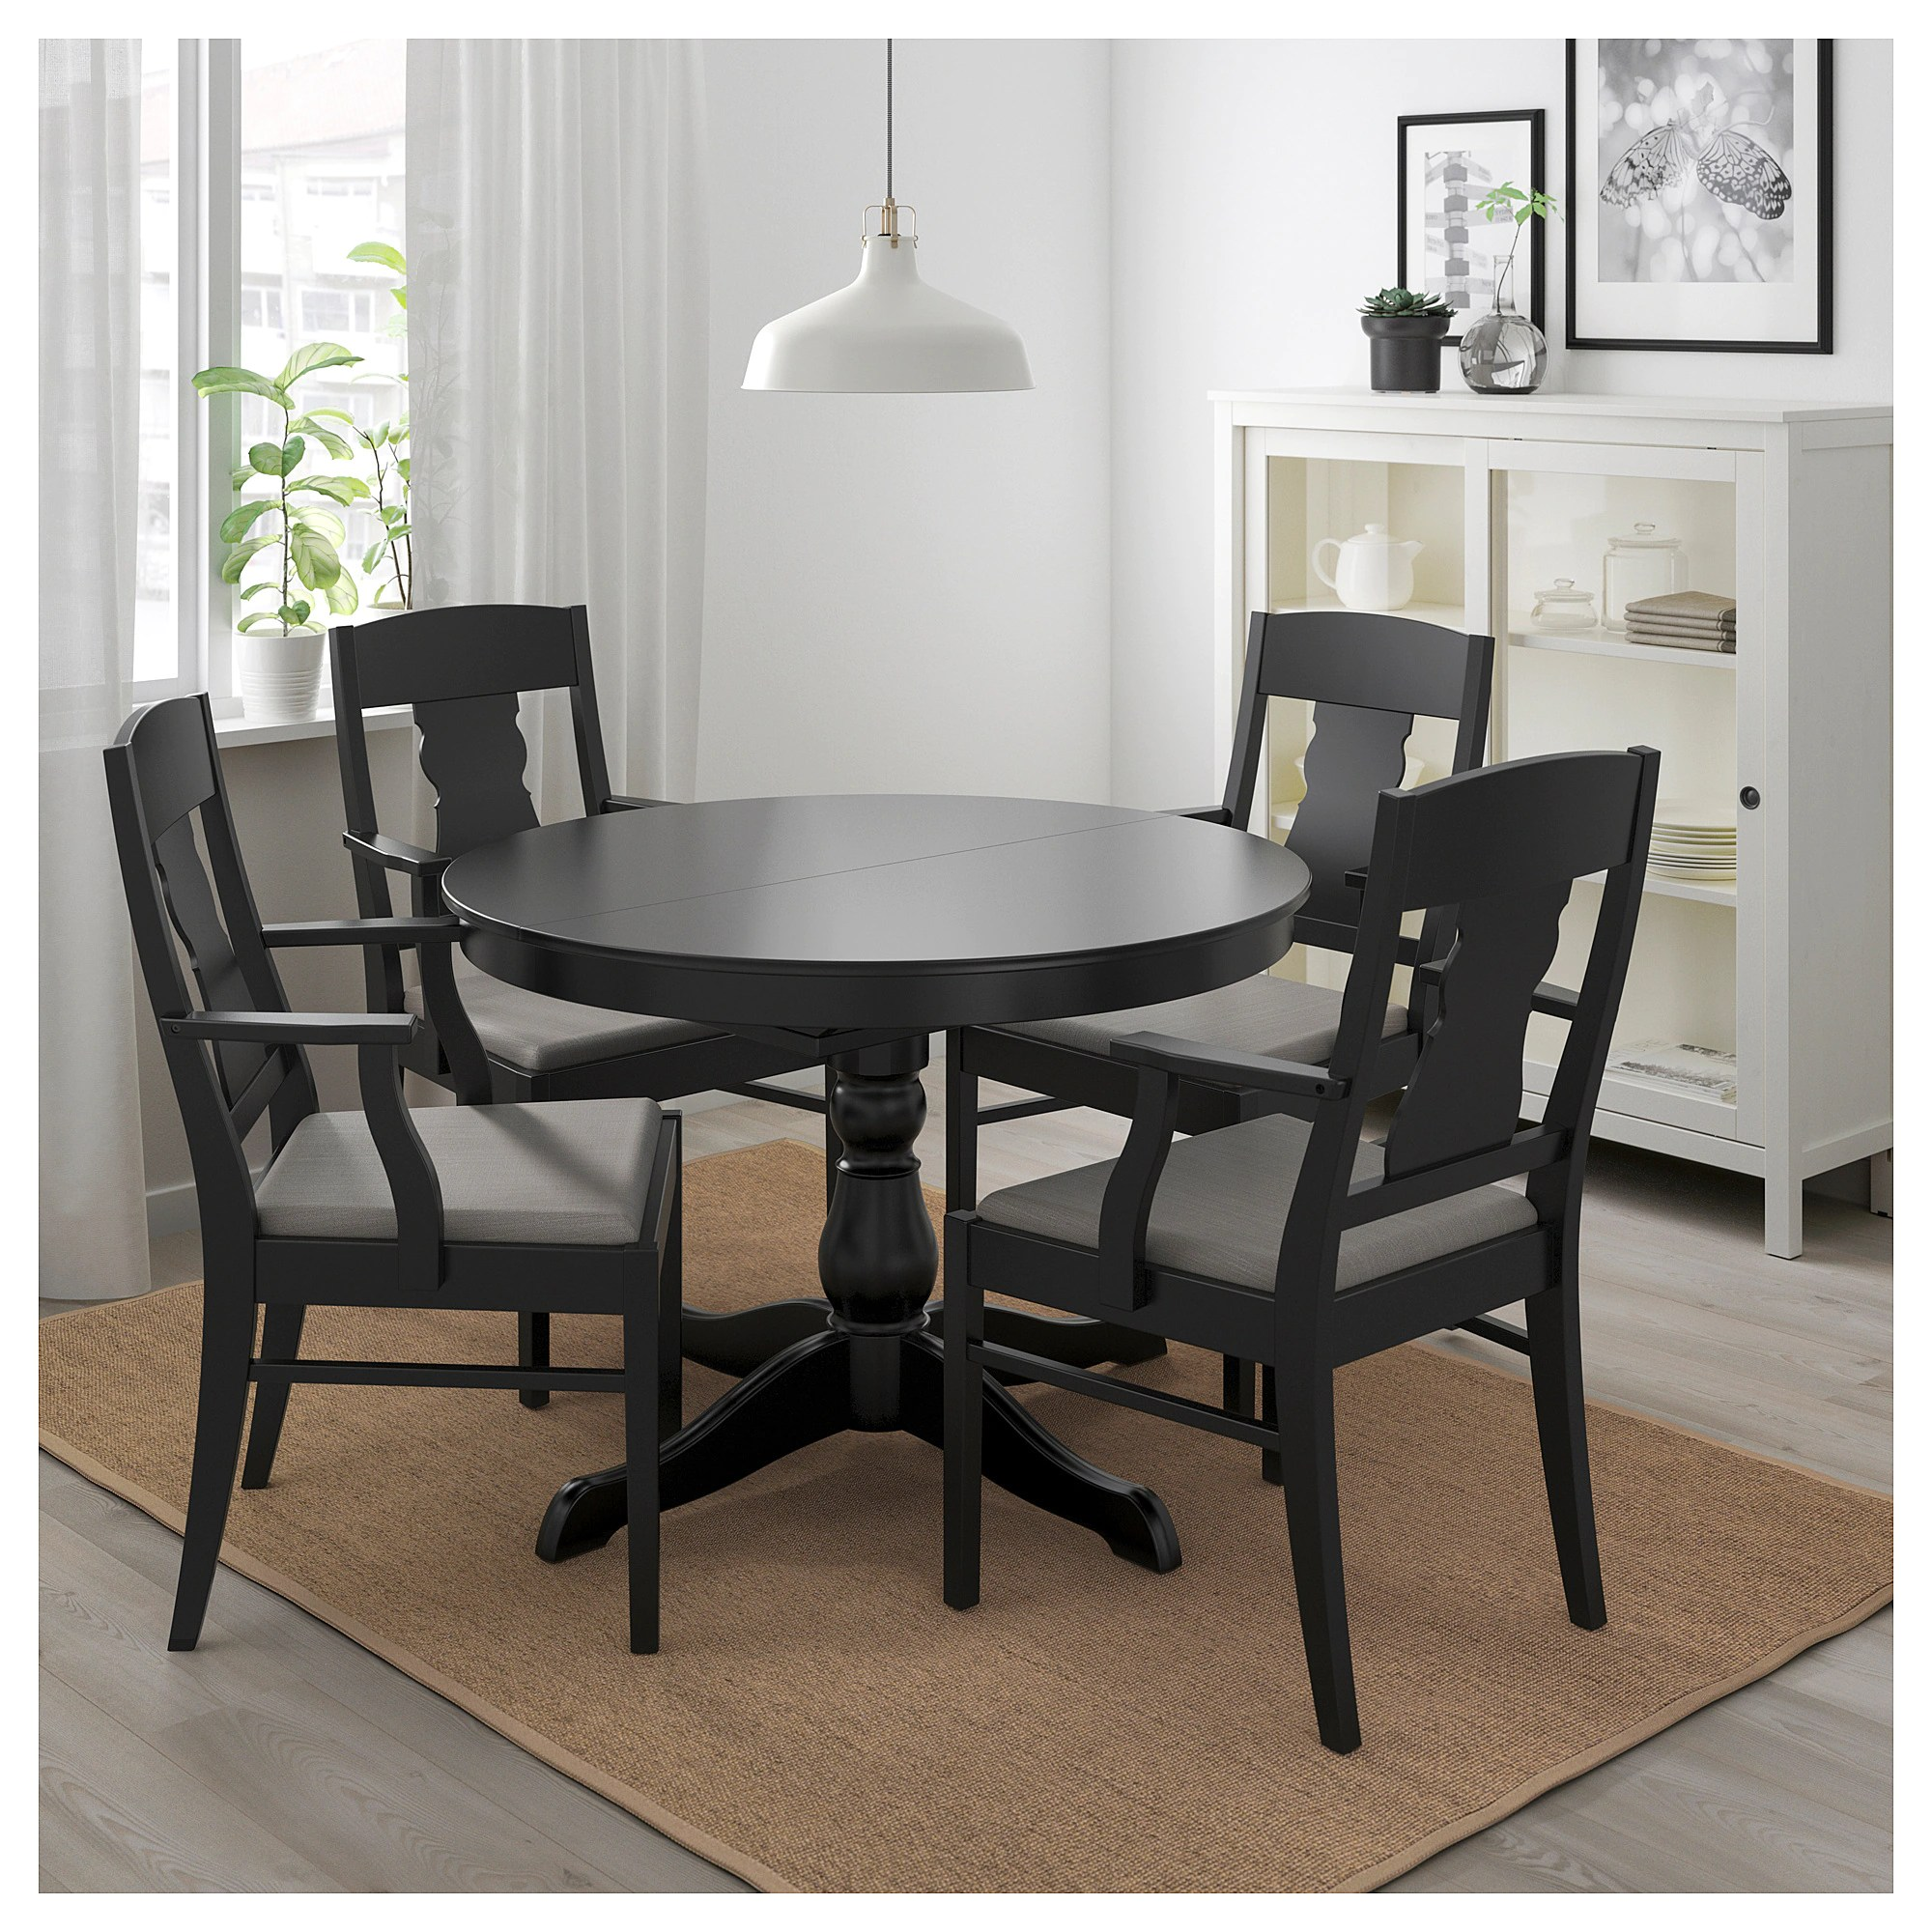 Ikea Tisch Weiß Ingatorp Ikea Ingatorp Ingolf Black Nolhaga Graybeige Table And 4 Chairs